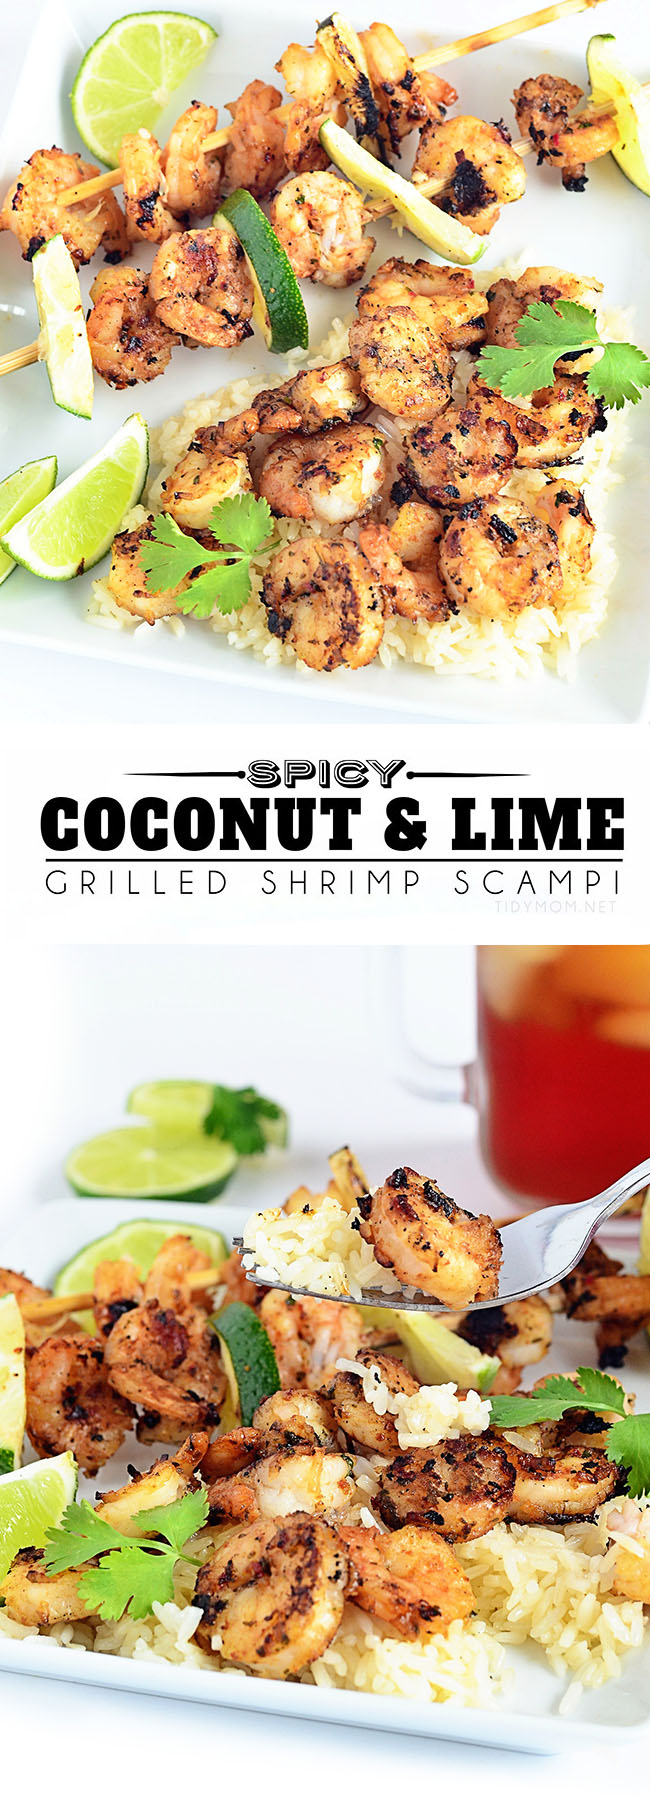 This simple and delicious grilled shrimp recipe blends coconut and lime while adding a touch of spice with Sriracha sauce to scrimp scampi. SPICY COCONUT LIME GRILLED SHRIMP SCAMPI recipe at TidyMom.net